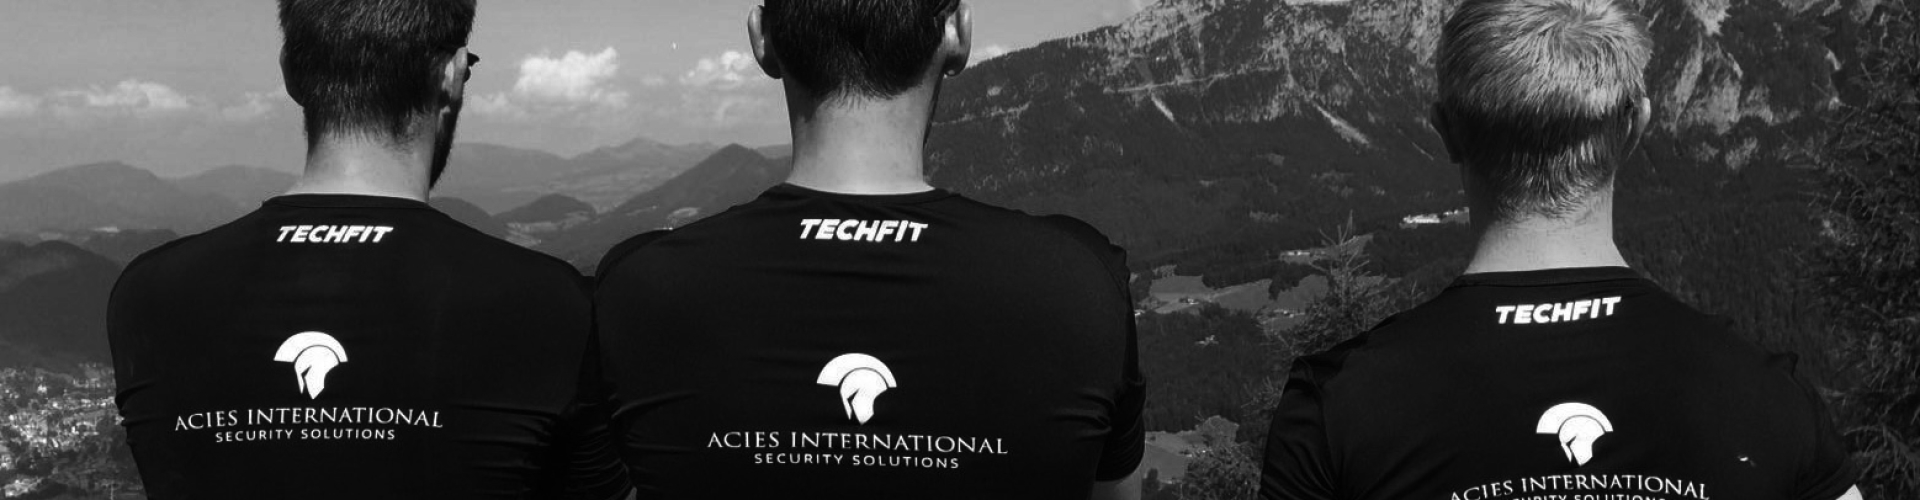 Acies International - About Us